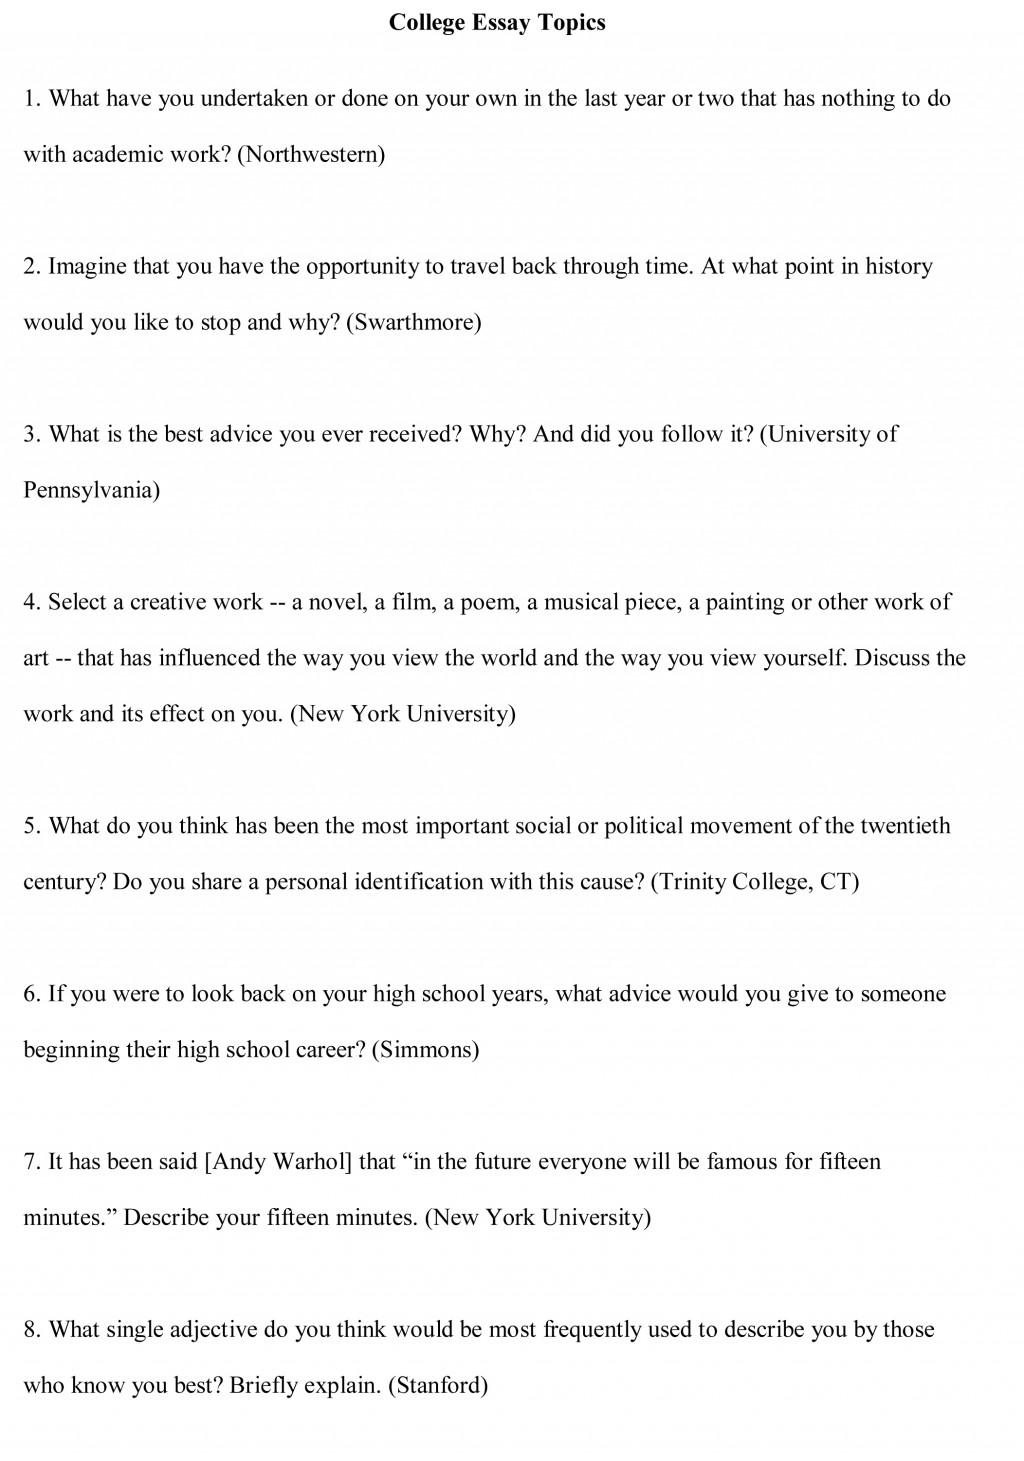 008 Essay Example College Topics Free Sample1 How To Excellent Essays For 4th Grade Write Scholarships Large